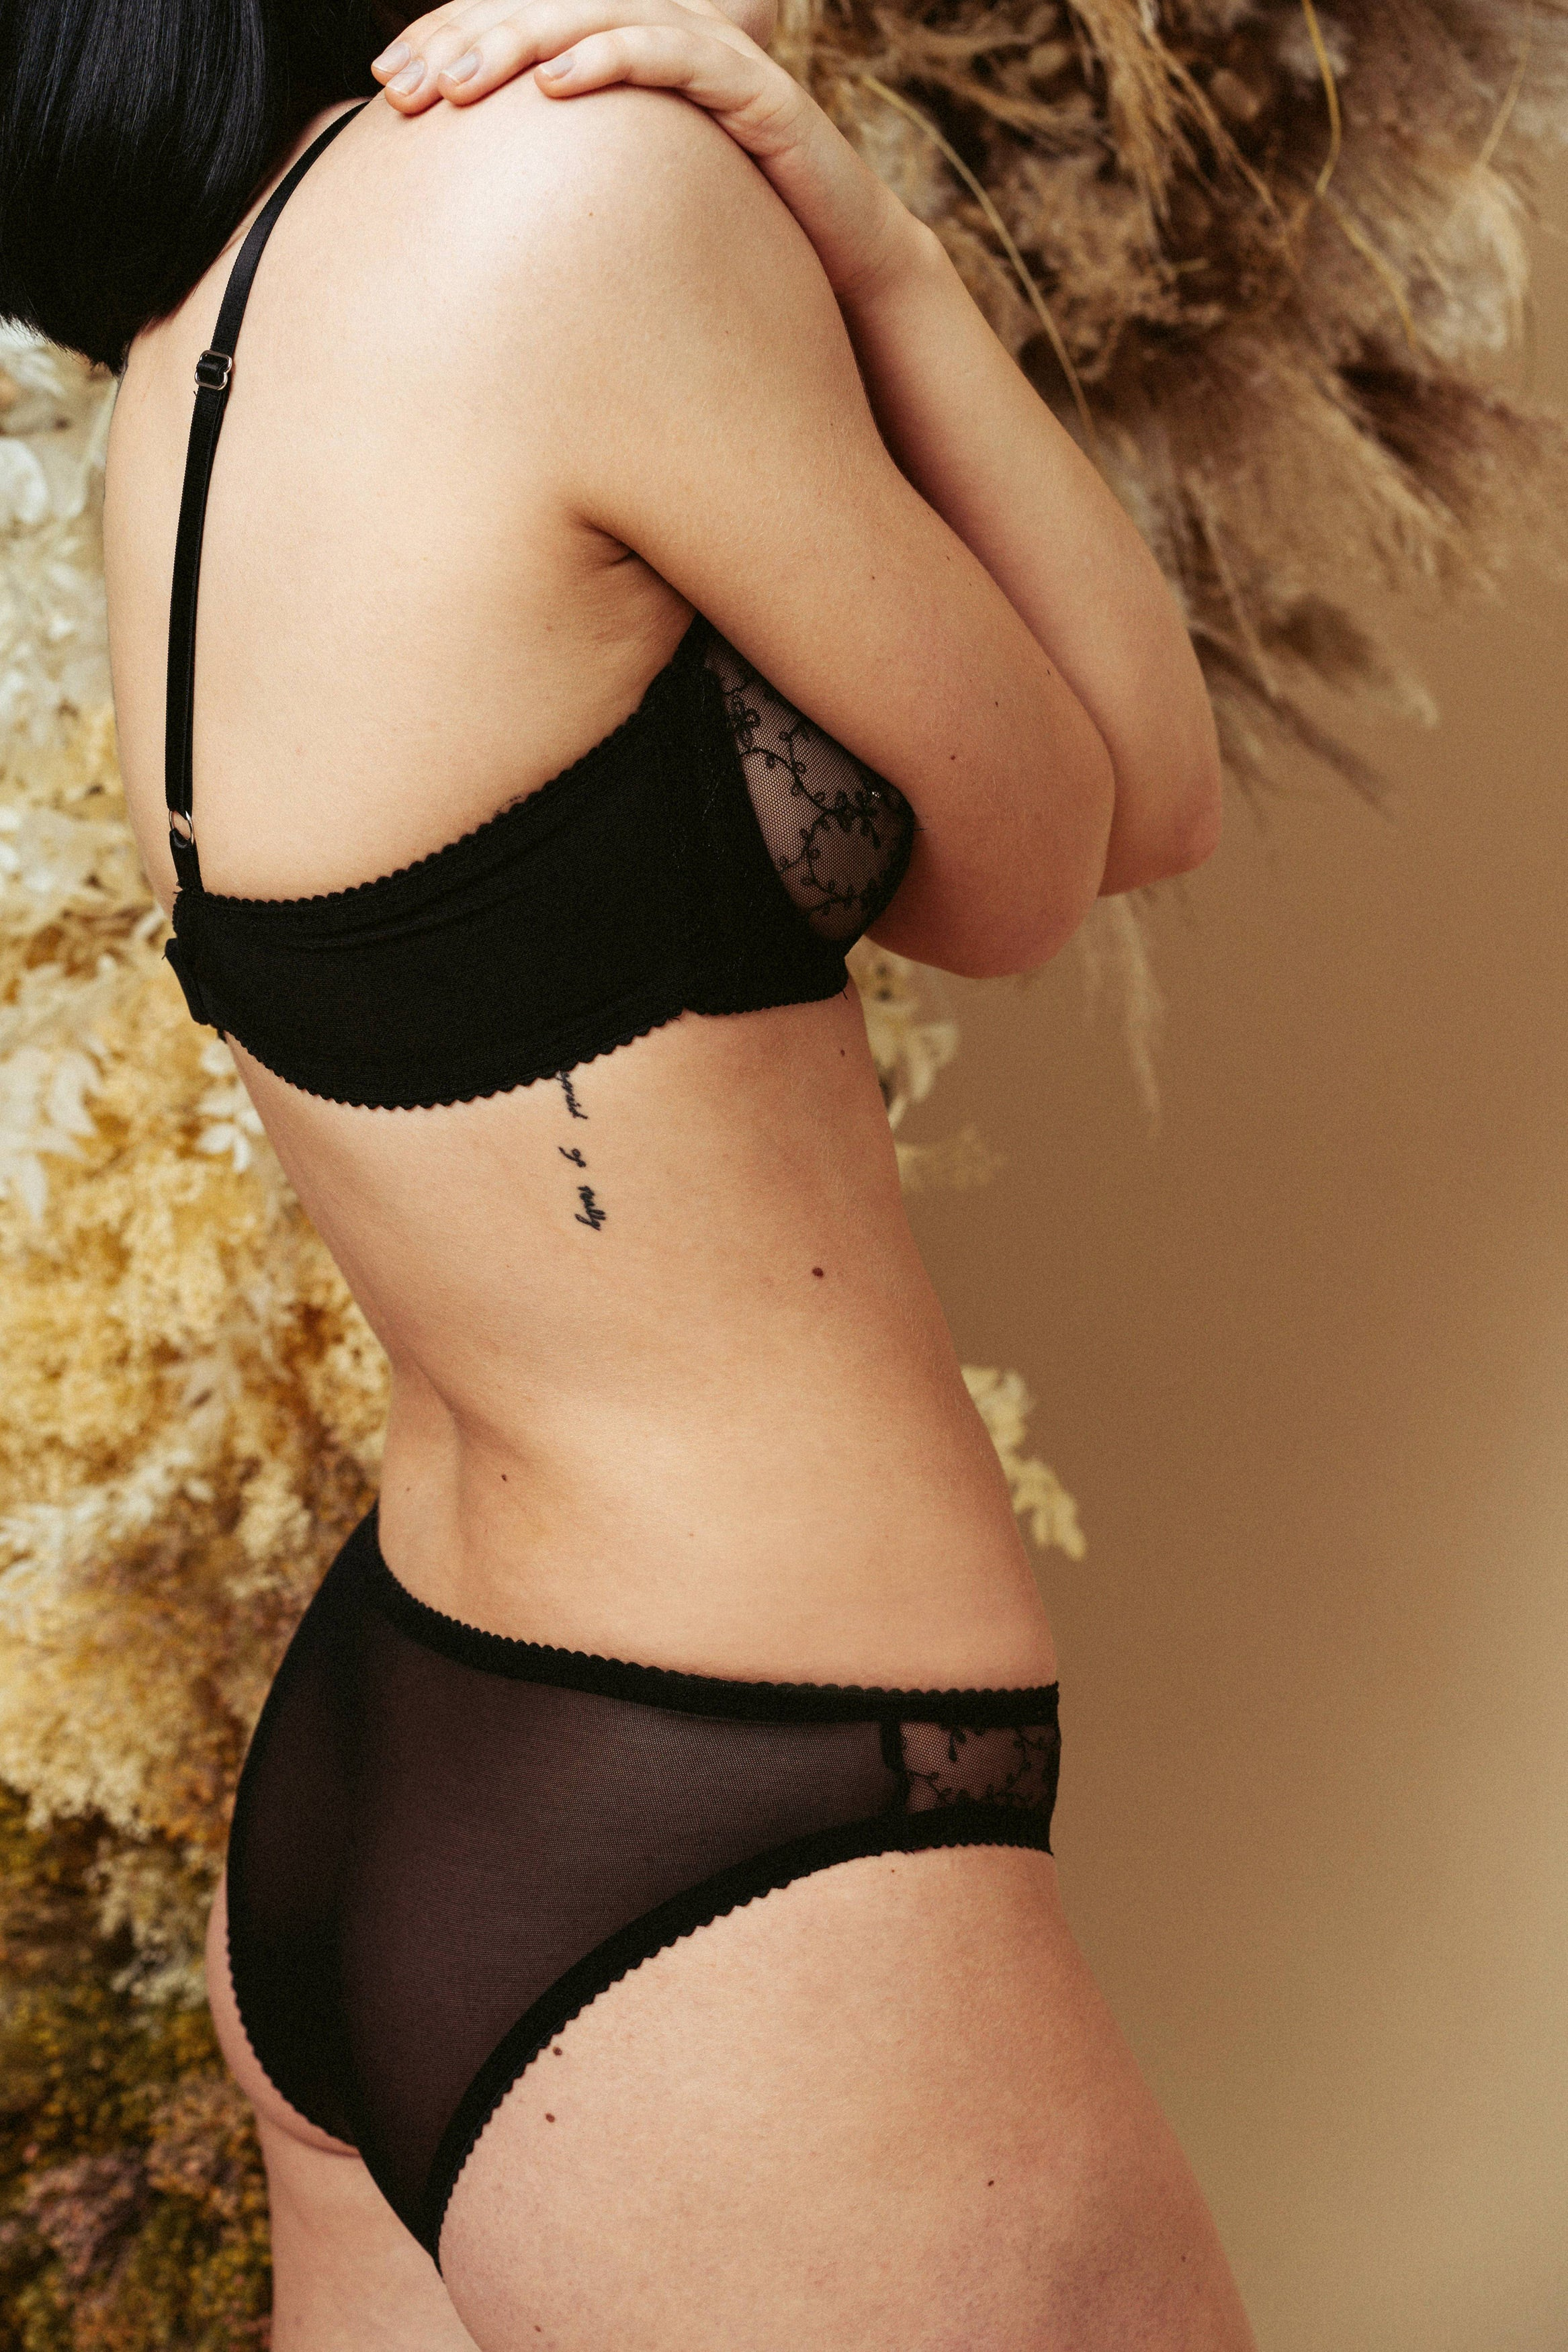 Model seen from the side and wearing the Kauf High Leg Knicker and Bandeaux Wire Bra in black